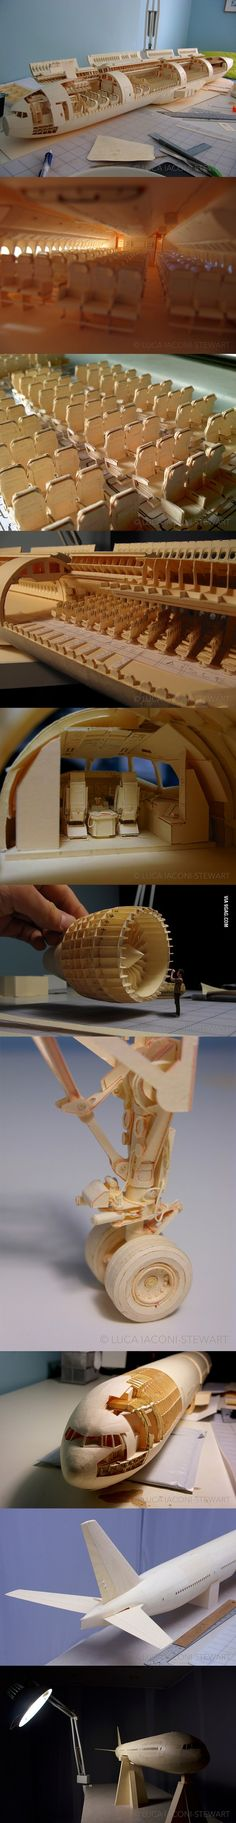 Artist Luca Iaconi-Stewart builds entire Boeing 777 aircraft in 1:60 scale out of nothing but manilla paper